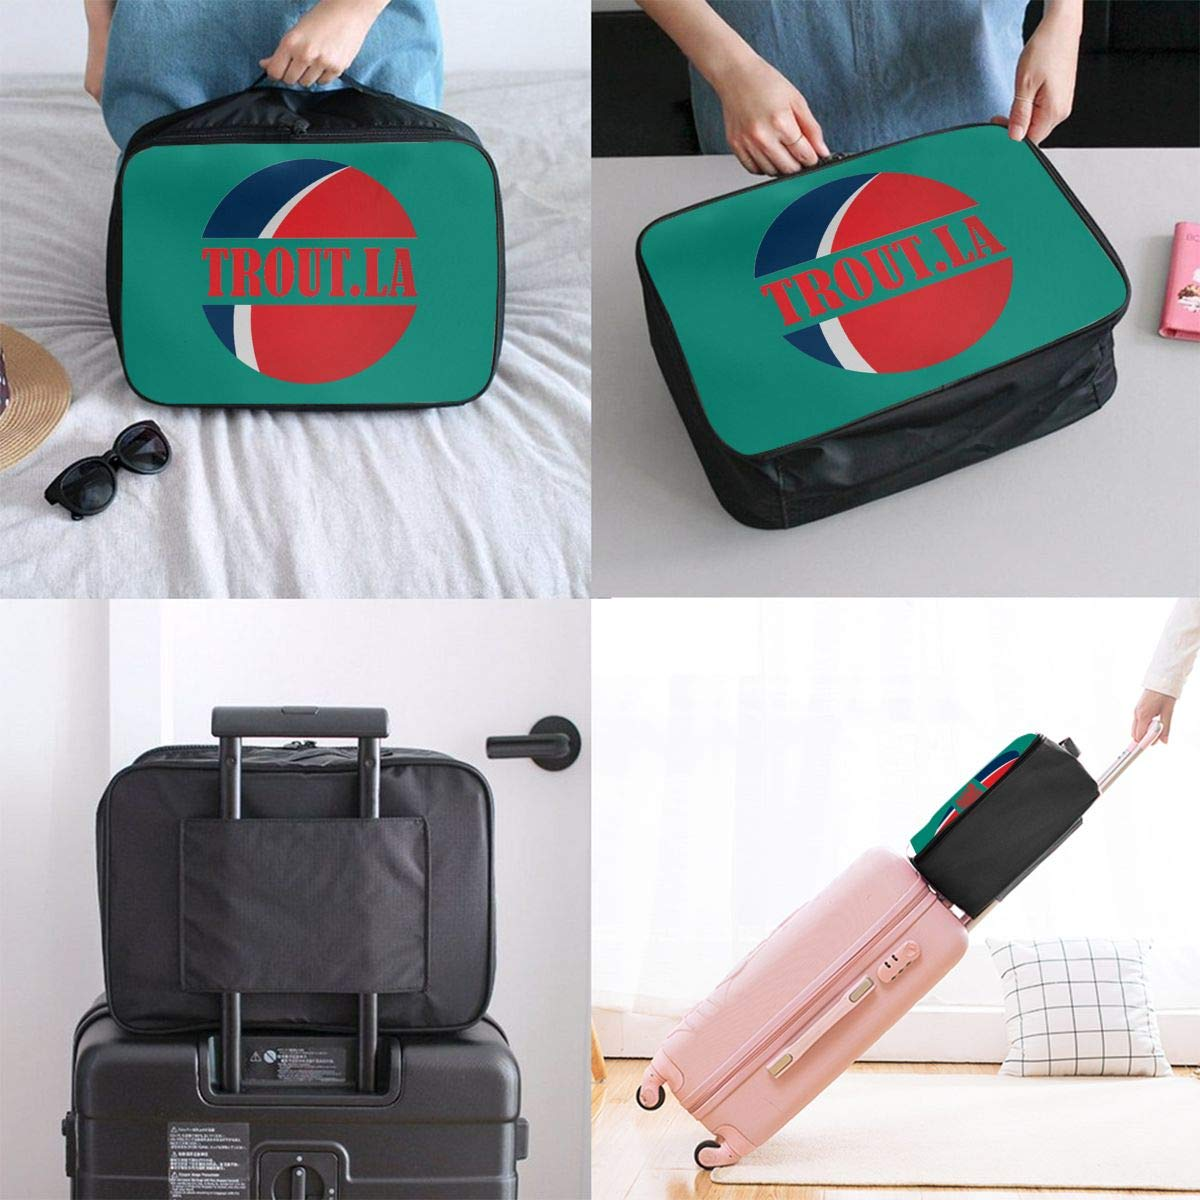 Travel Duffel Bag Waterproof Lightweight Large Capacity Travel Bag Trout La Logo Portable Carry On Luggage Bag For Travel Camping Sport White